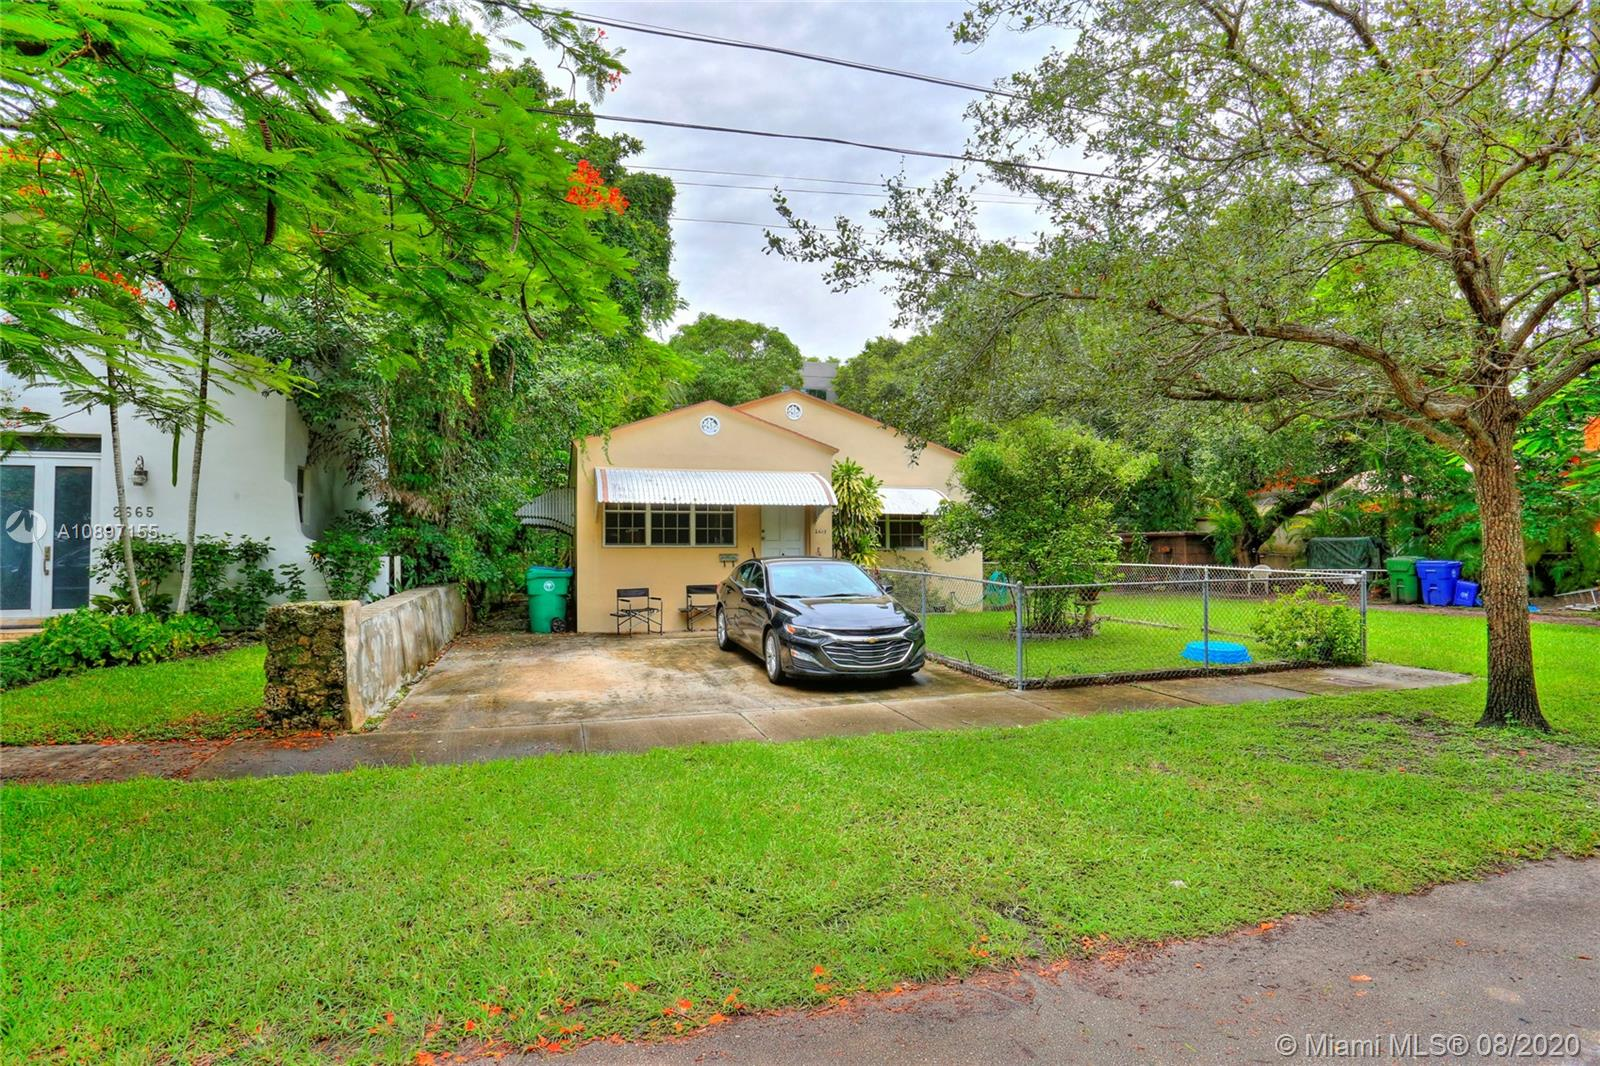 Opportunity to live on a quiet tree-lined street in prestigious North Coconut Grove, just a short walk to bayfront parks & marinas. Rebuild the existing structure or build a new construction home. The lot is located at one of the highest sea-level elevations in South Florida (not in a flood-zone). Close to the Grove village center's galleries, boutiques & cafes and minutes to downtown, MIA, Coral Gables, Key Biscayne & the Beaches.